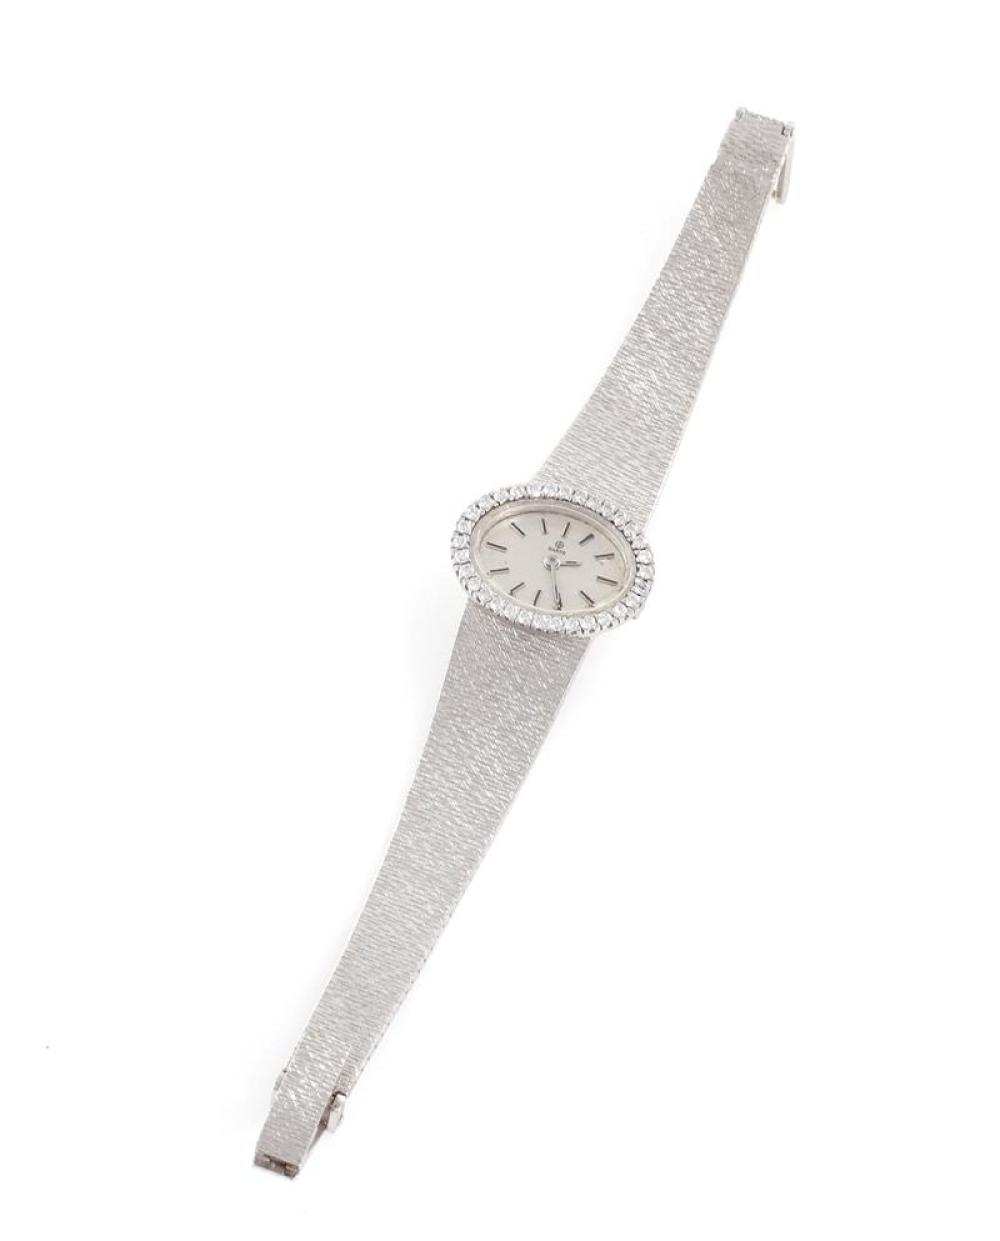 Ebel 18K gold and diamond wristwatch, retailed by Barth